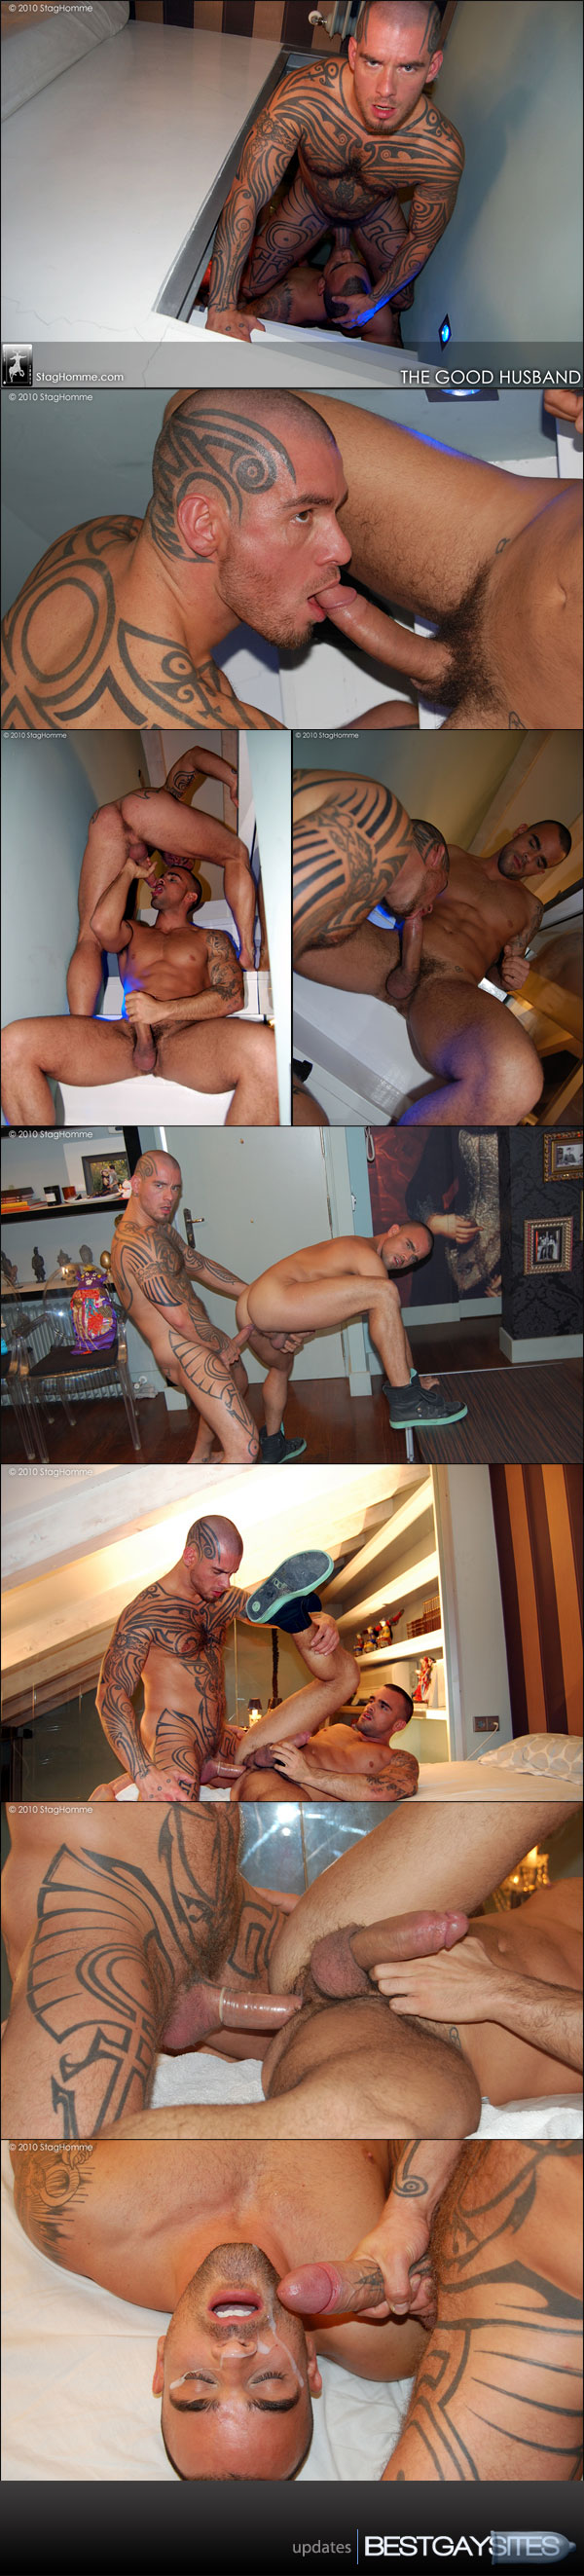 Stag Homme - The Good Husband, with Damien & Logan McCree